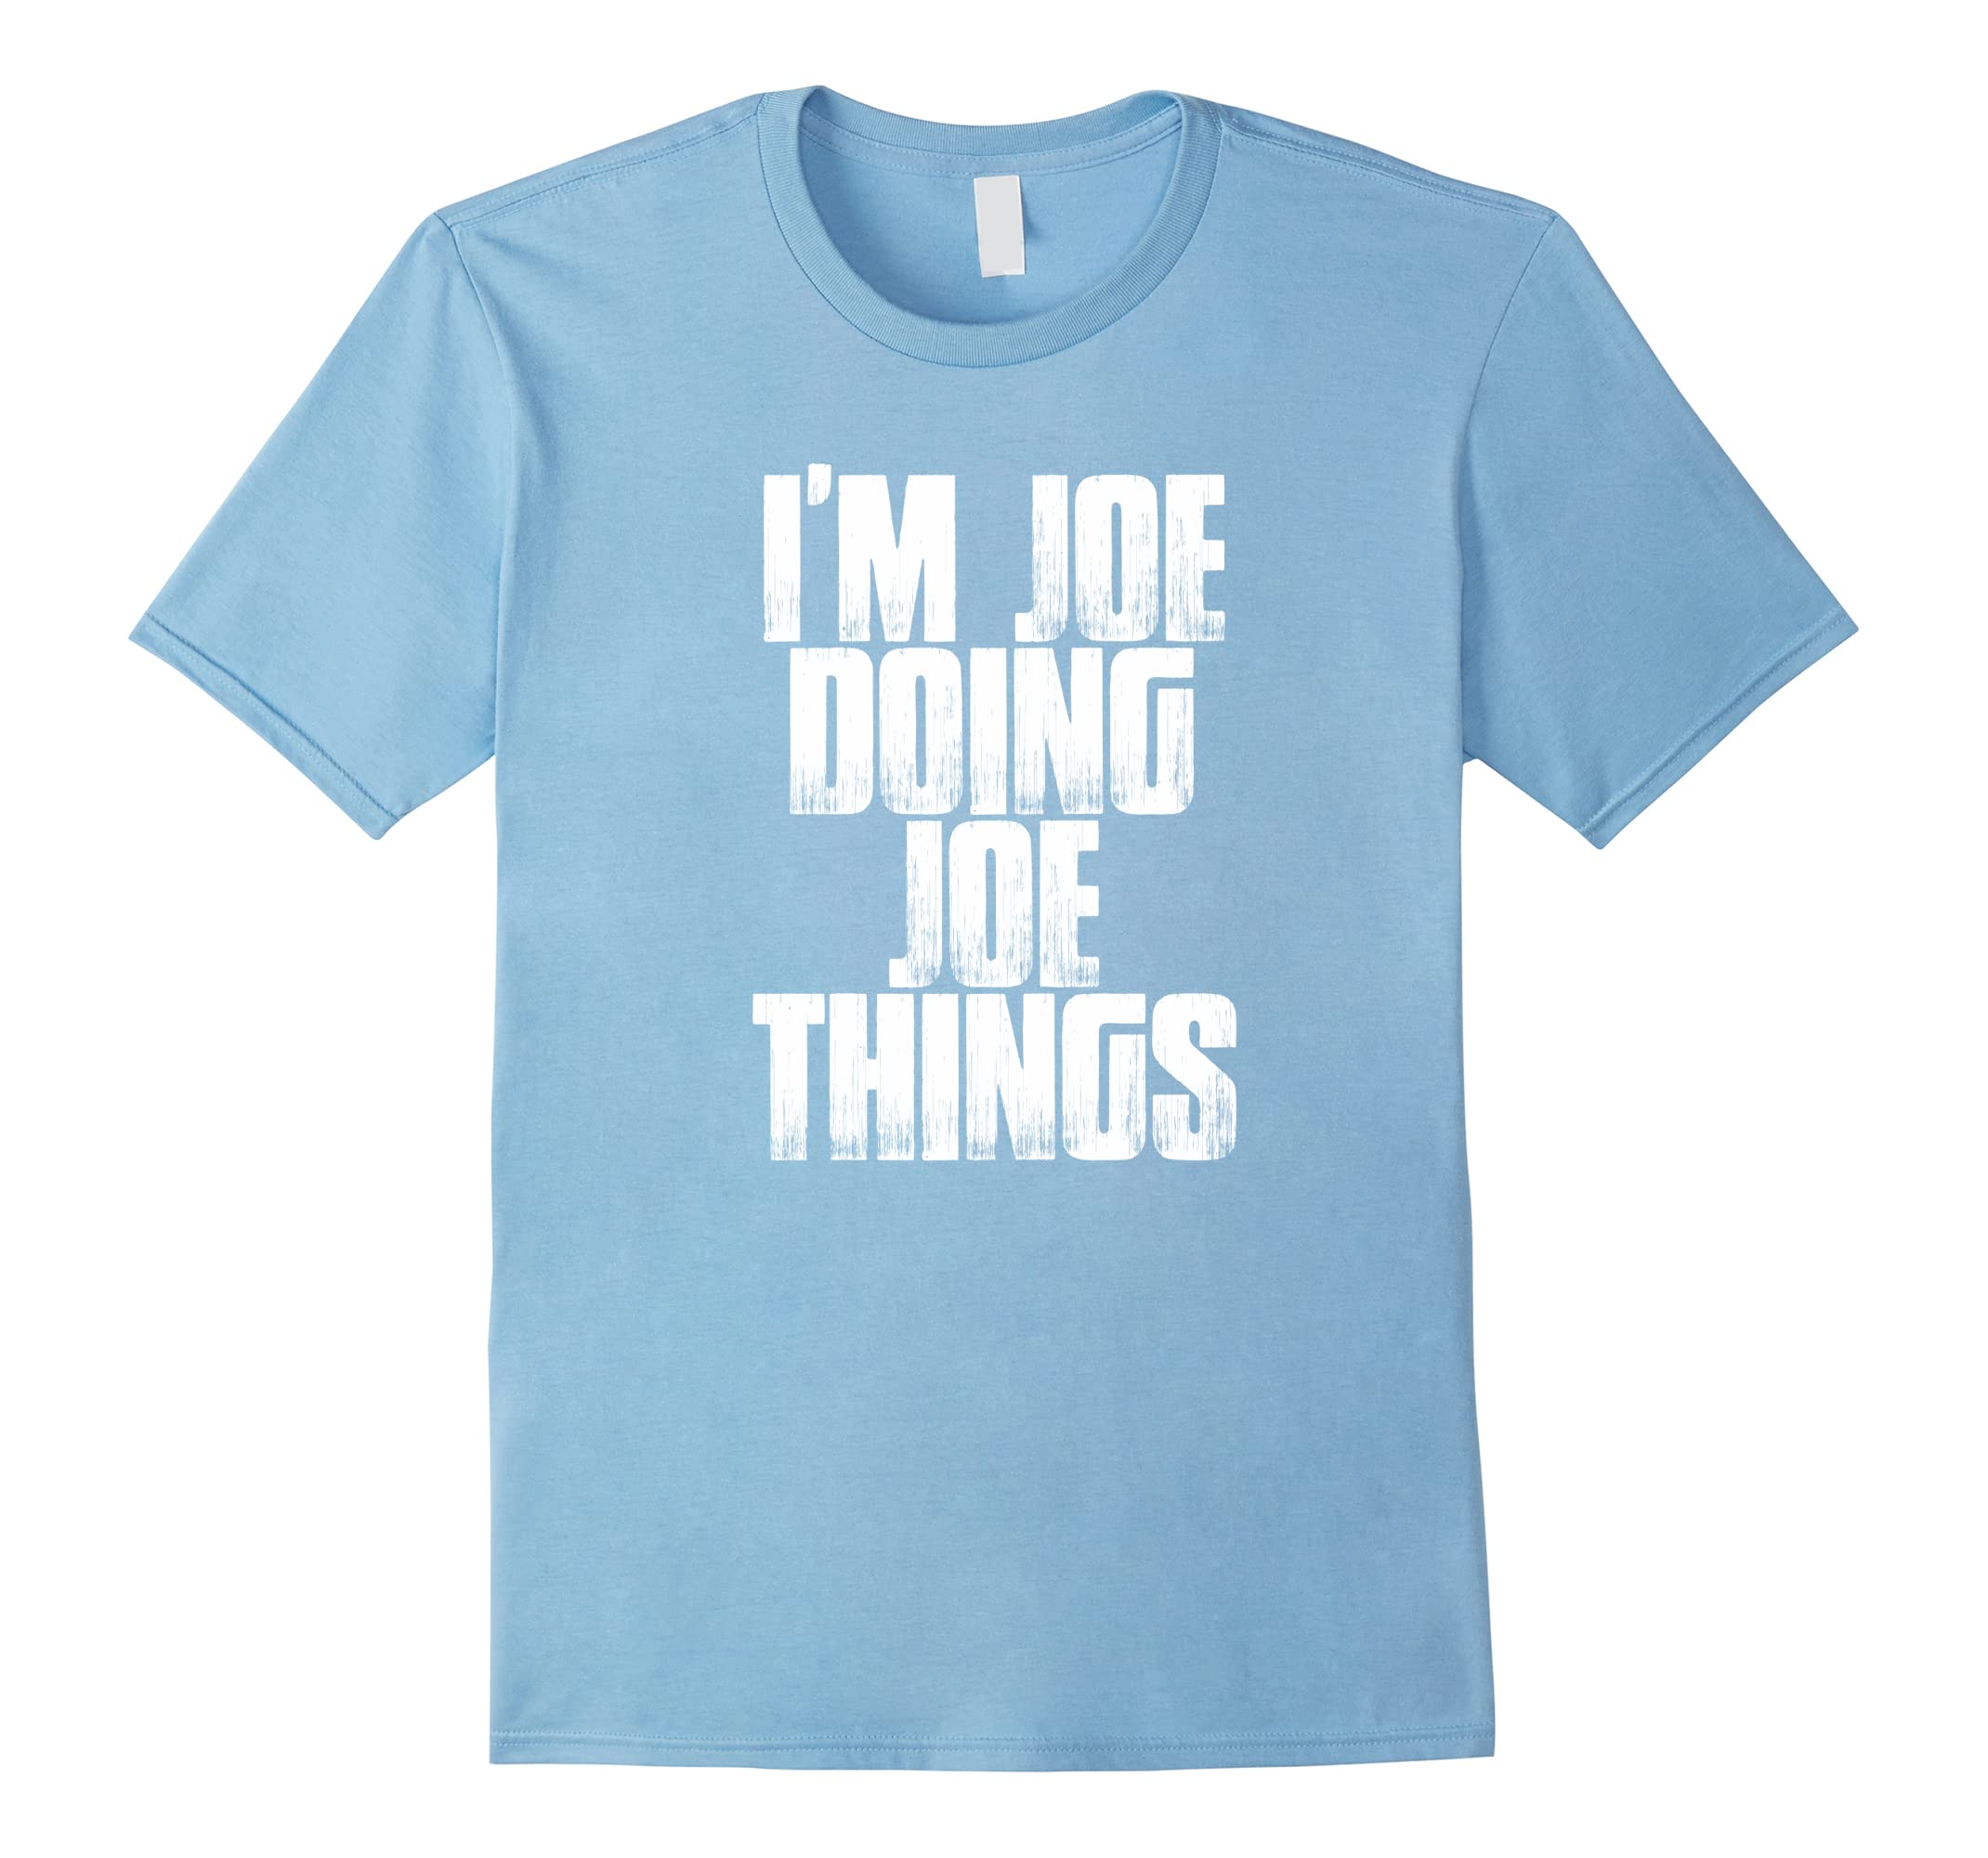 Doing Things Funny Sarcastic Shirt-Tovacu